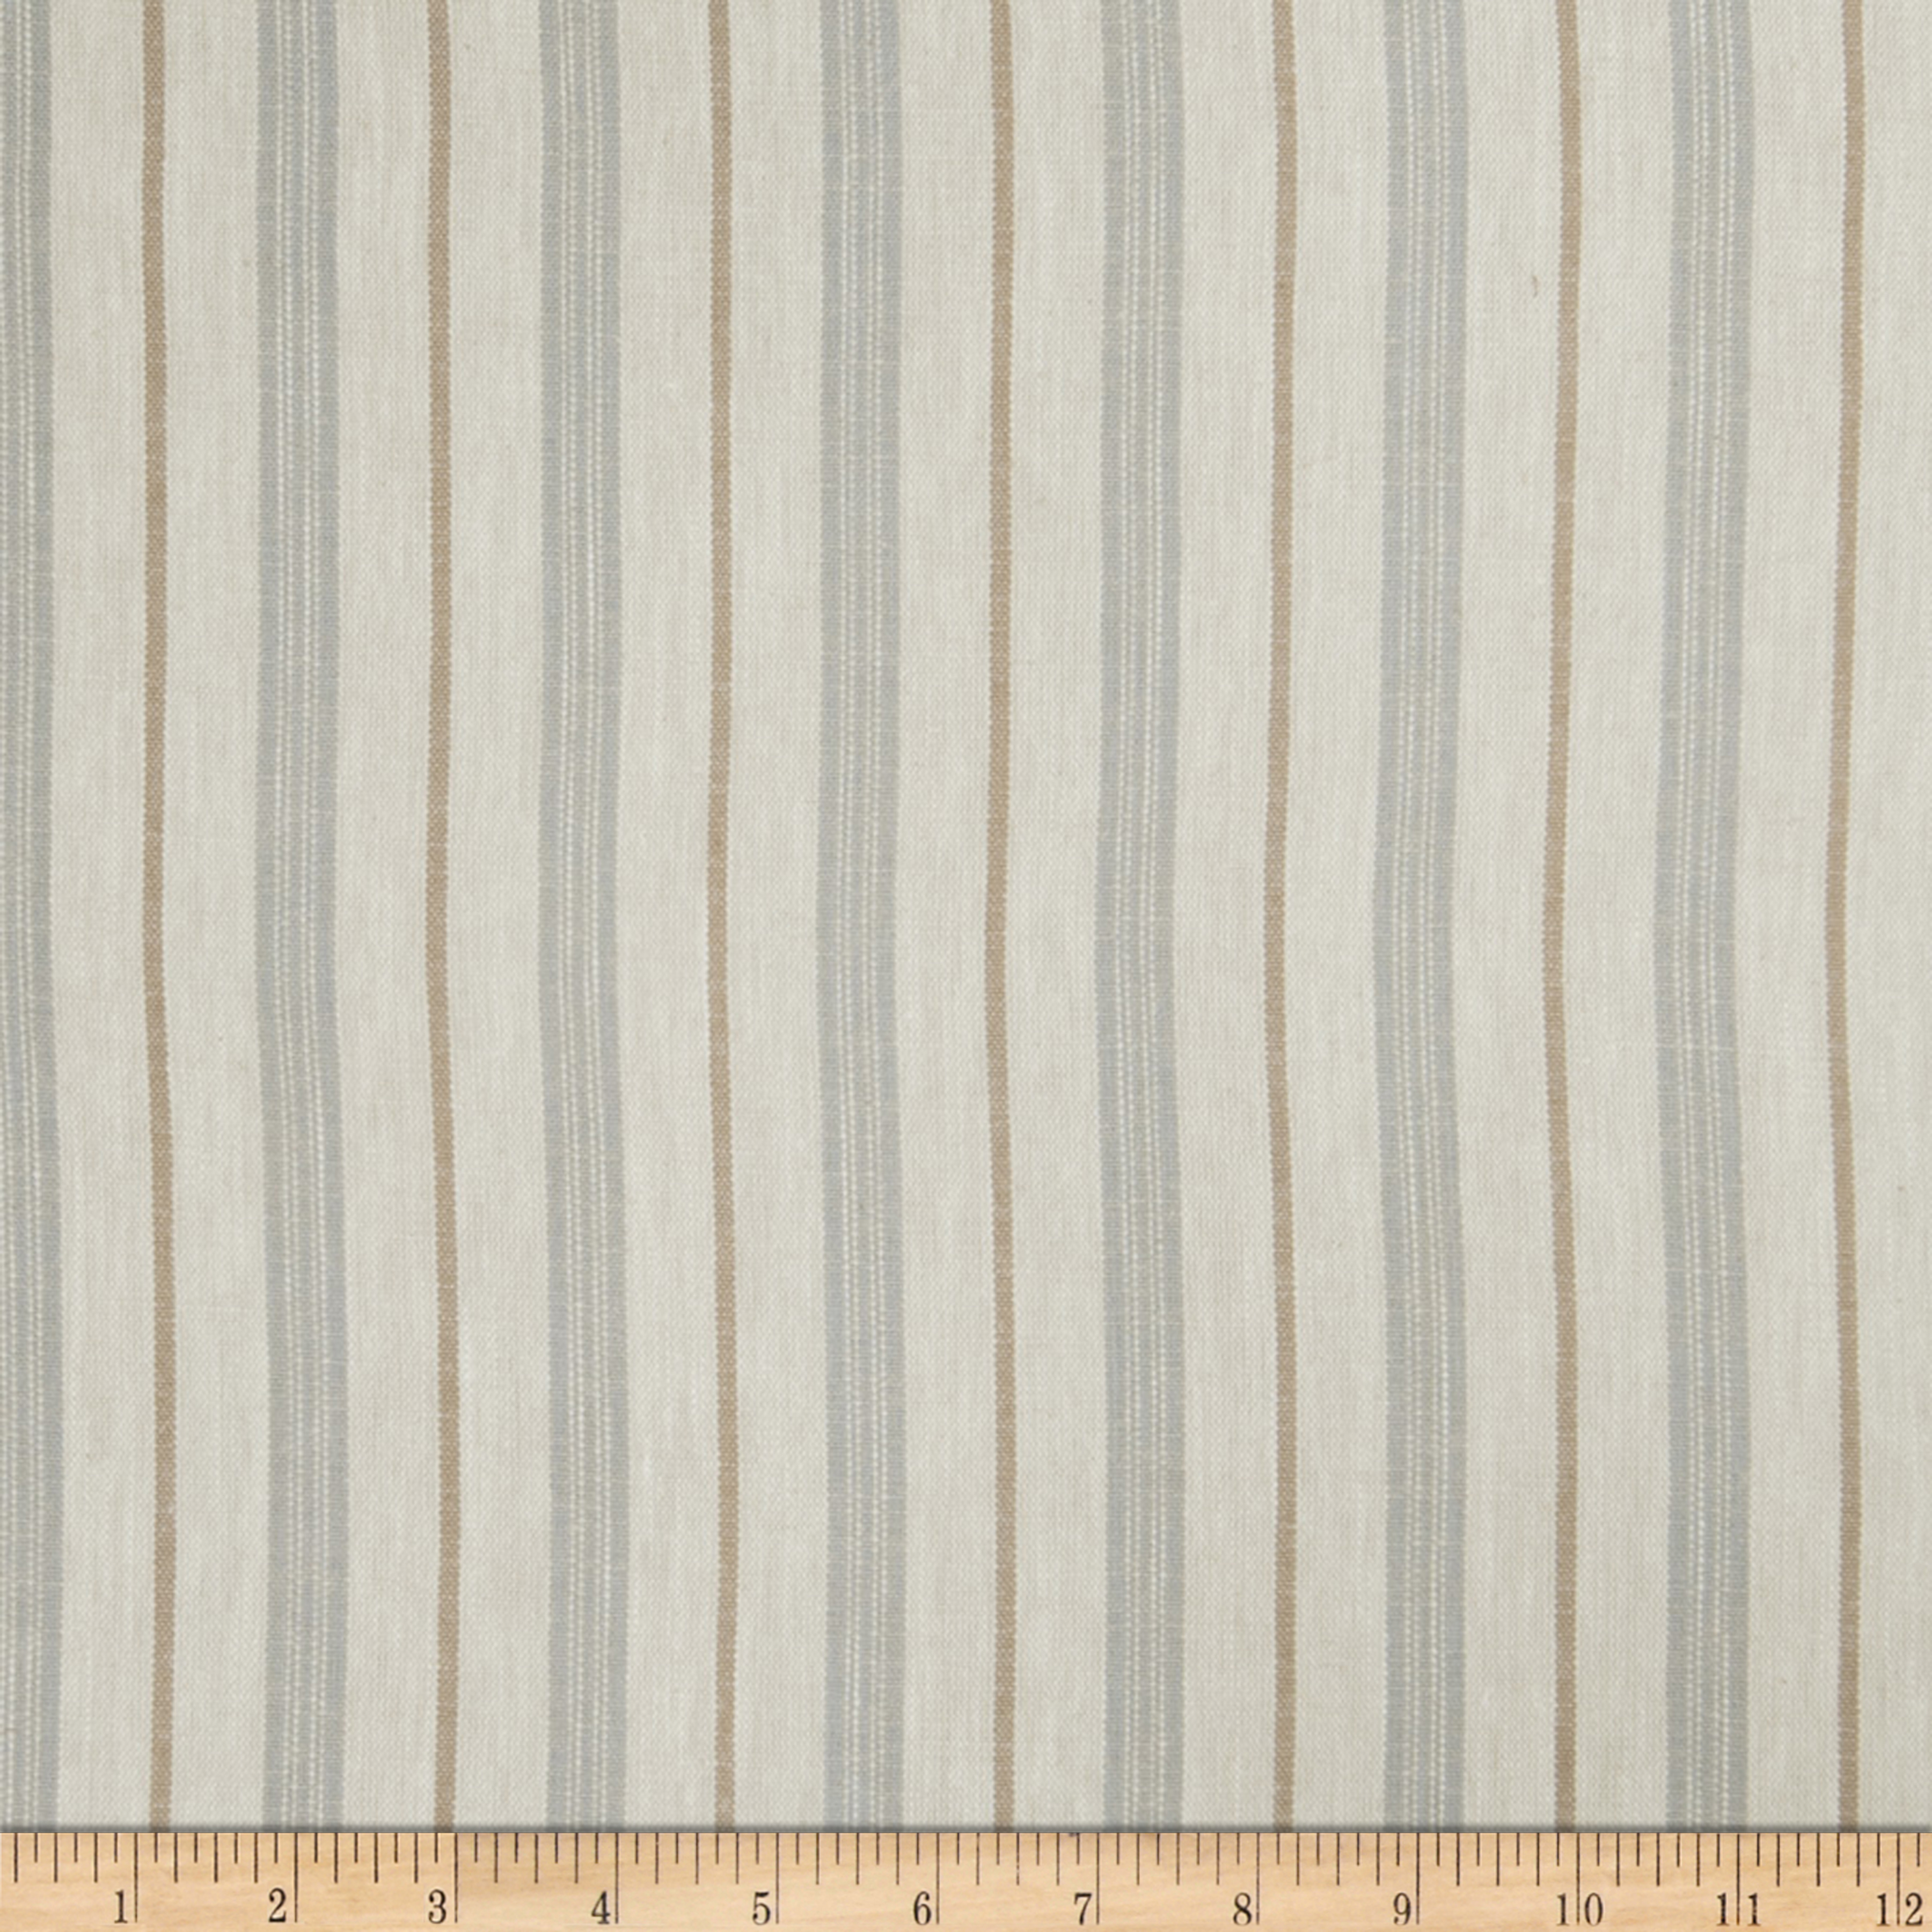 Jaclyn Smith Stamford Stripe Blend Chambray Fabric by Fabricut in USA